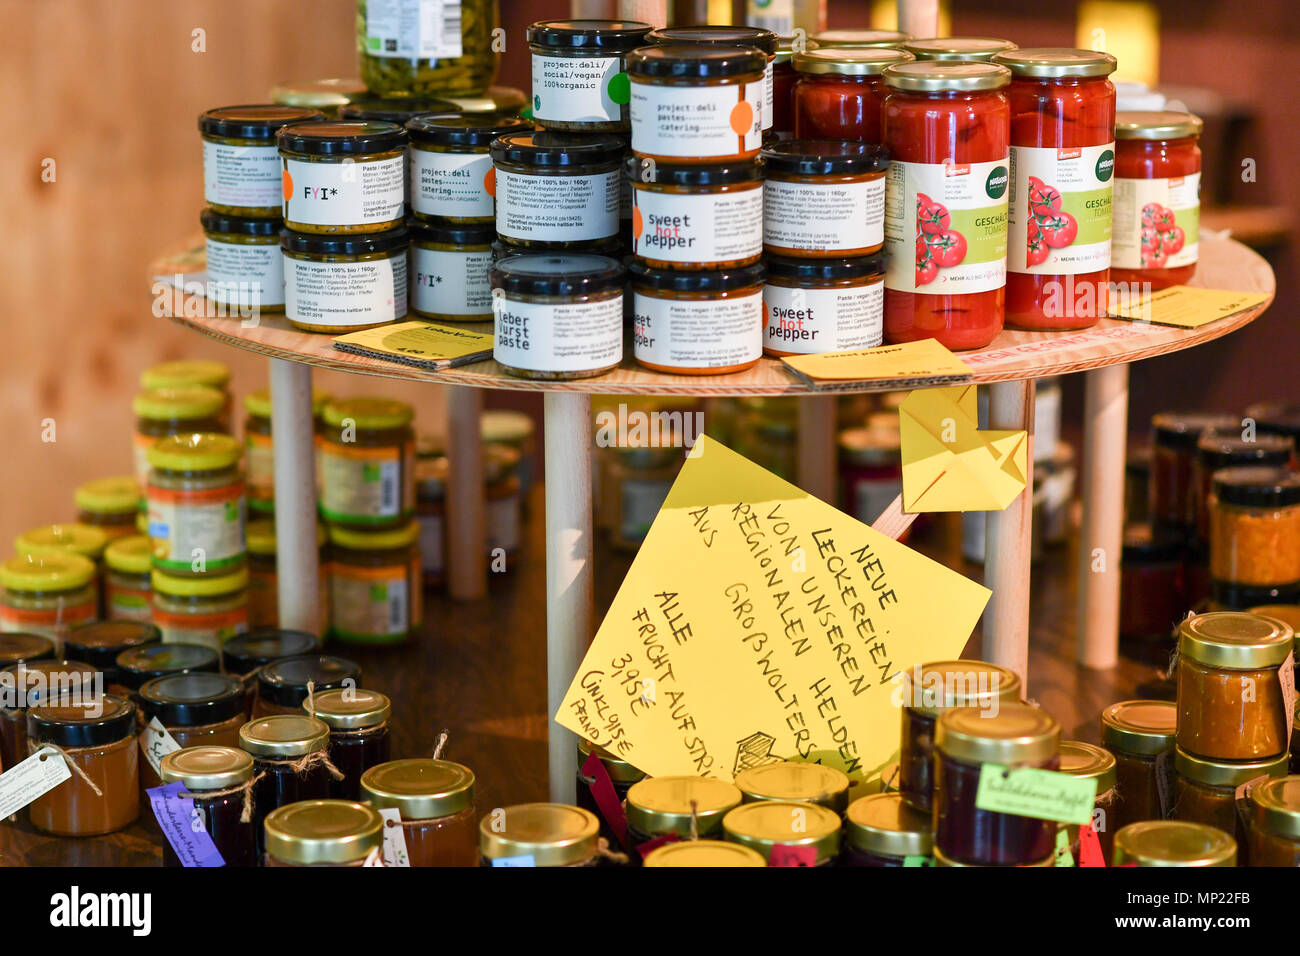 16 May 2018, Germany, Berlin: Delicacies and glasses with vegetables are offered at the zero waste shop 'Der Sache wegen - einfach richtig einkaufen' (lit. For the cause - simply shop right) at Lychener Strasse in the district of Prenzlauber Berg. The shop sells food and household goods like detergents and soap. The products are free of plastic, free of palm-oil, organic, regional, fair, conscious and no animals suffer for them or comply with the current ecological alternative. Food is being sold in reusable containers and filled in own bags, cups or bowls. Among others, this allows for shoppi - Stock Image